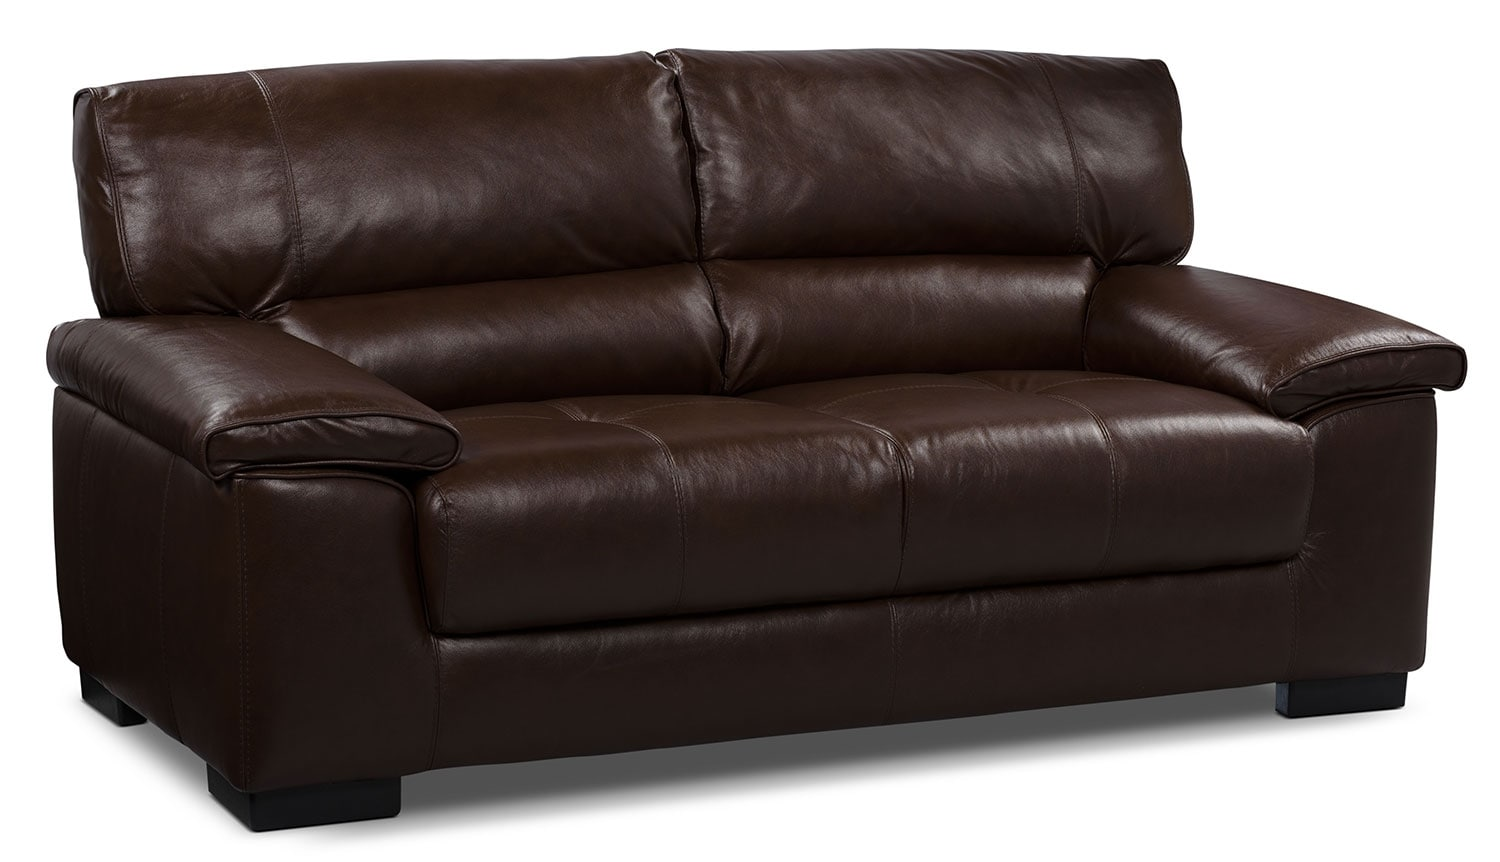 Chateau Dax Furniture Reviews: Chateau D'Ax 100% Genuine Leather Loveseat